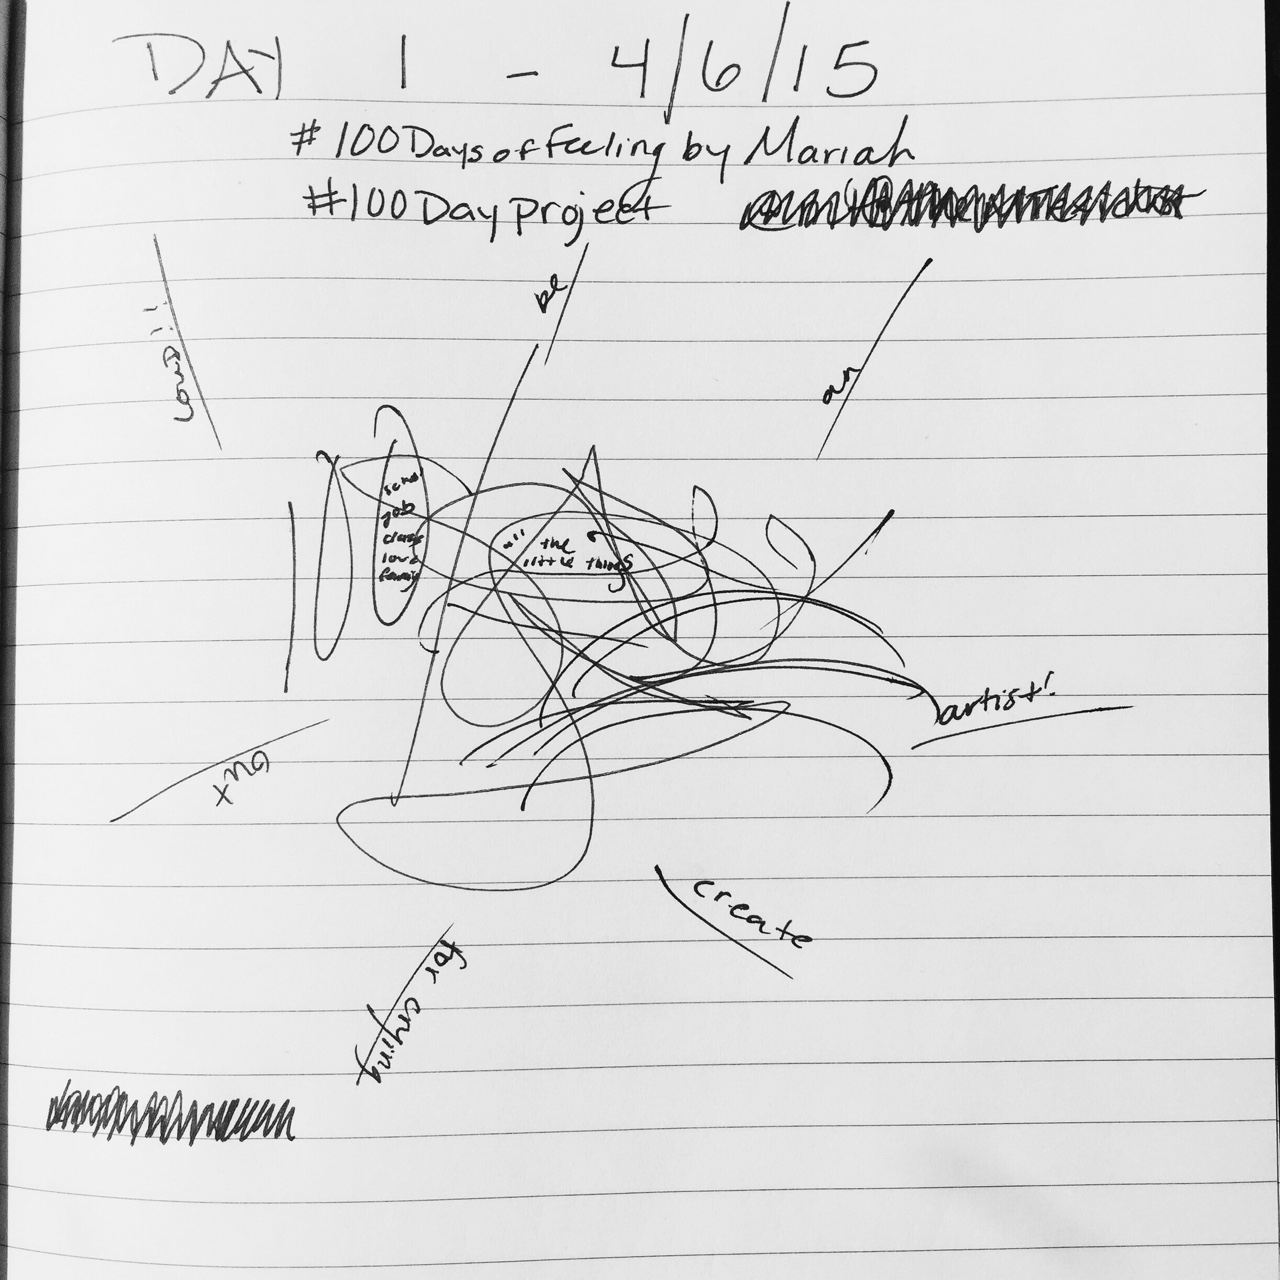 001/100  On a daily basis I am feeling a crap ton of emotions. I'm taking these emotions and making sketches. It's part of my #100DayProject Titled #100DaysofFeelingbyMariah     No doubts.  No limitations. If I only have a pen then that is what I'll use. If I only have a napkin, then that is what I will use.   Take it everywhere  Feel passionate  And most of all, Keep Going.   Just create.     Today is day one, so if you would like to join us, it is not too late! Go to thegreatdiscontent.com/100days for the details.     I don't know what these sketches will turn into, but that's the exciting part. I want them to inspire new work, photos, ideas, the possibilities are endless and I am capable.     #MakeWork #CreateforCryinOutLoud